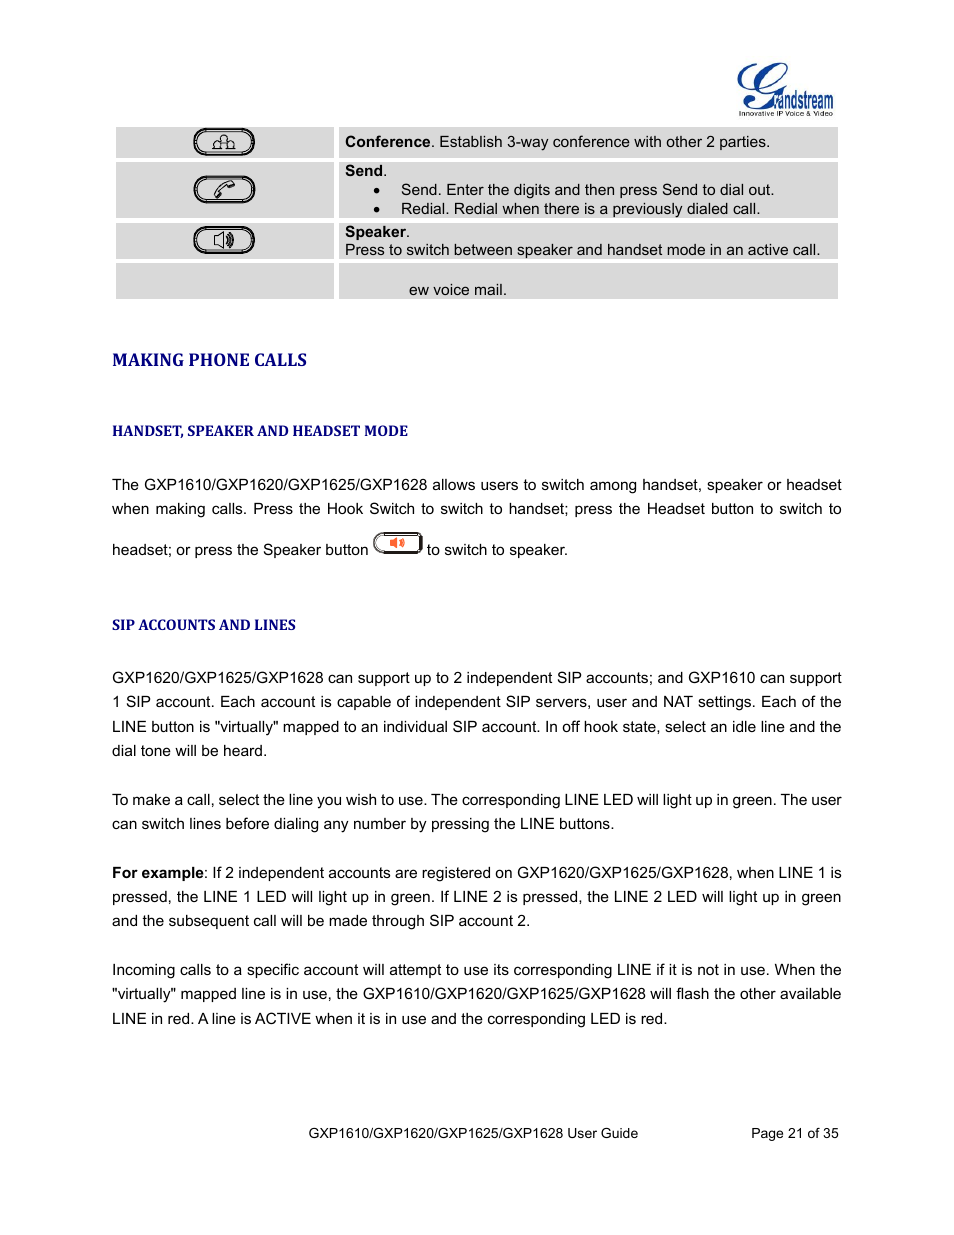 Making phone calls, Handset, speaker and headset mode, Sip accounts and  lines | Grandstream GXP1610 User Guide User Manual | Page 22 / 38